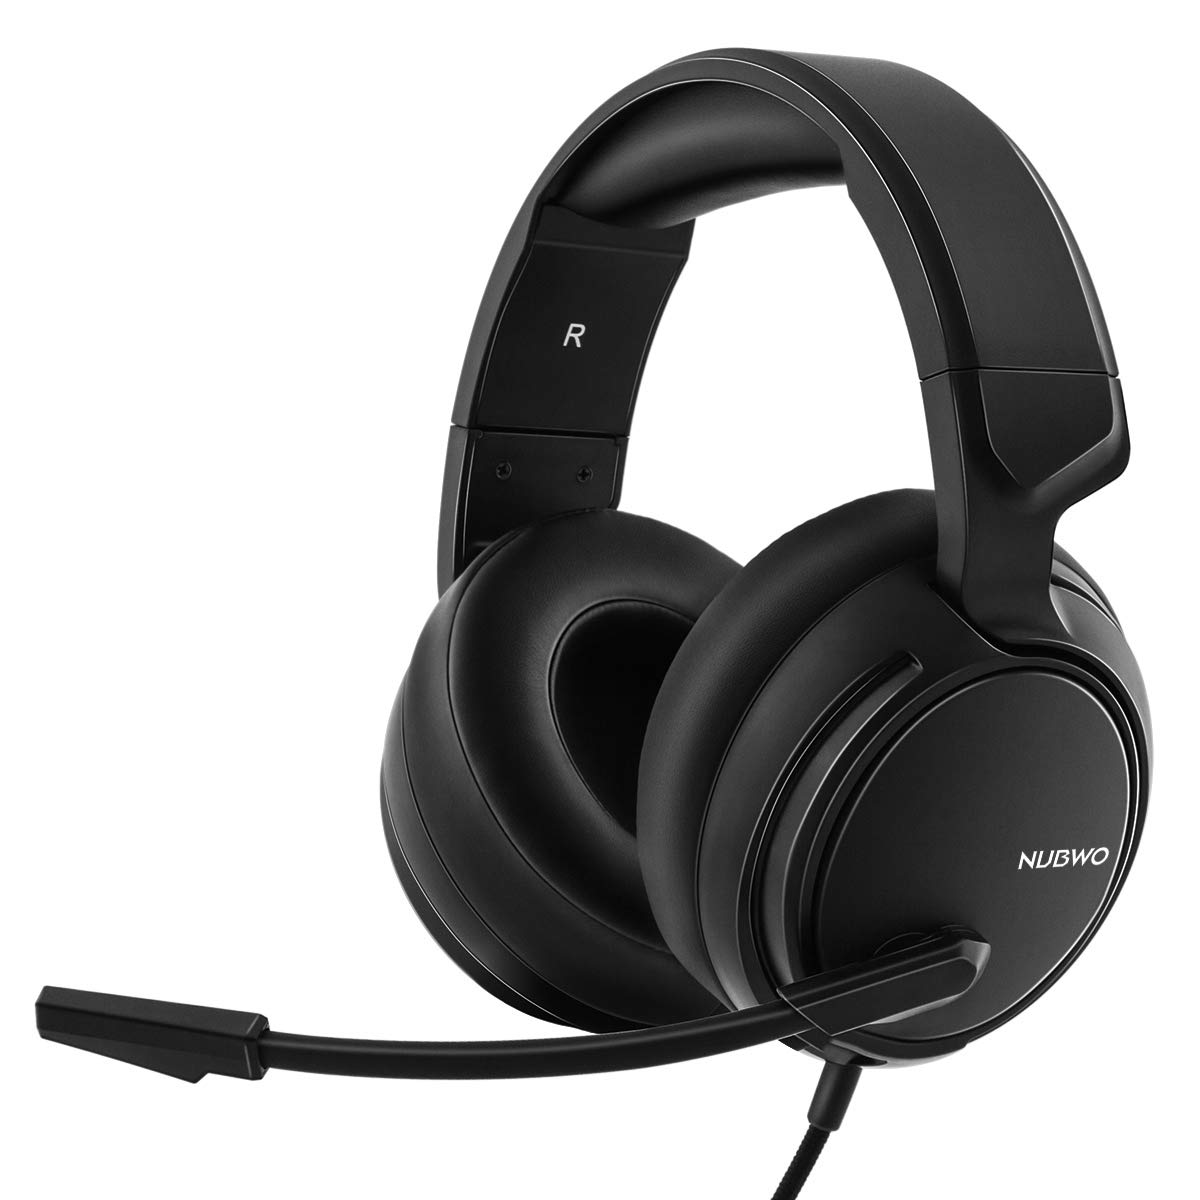 NUBWO N12 Gaming Headset for Xbox One PS4 PC with Flexible Mic Comfort Rotatable Earmuffs, Stereo Sound, Easy Volume Control for Xbox One S/X Playstation 4 Computer Laptop (Black) by NUBWO